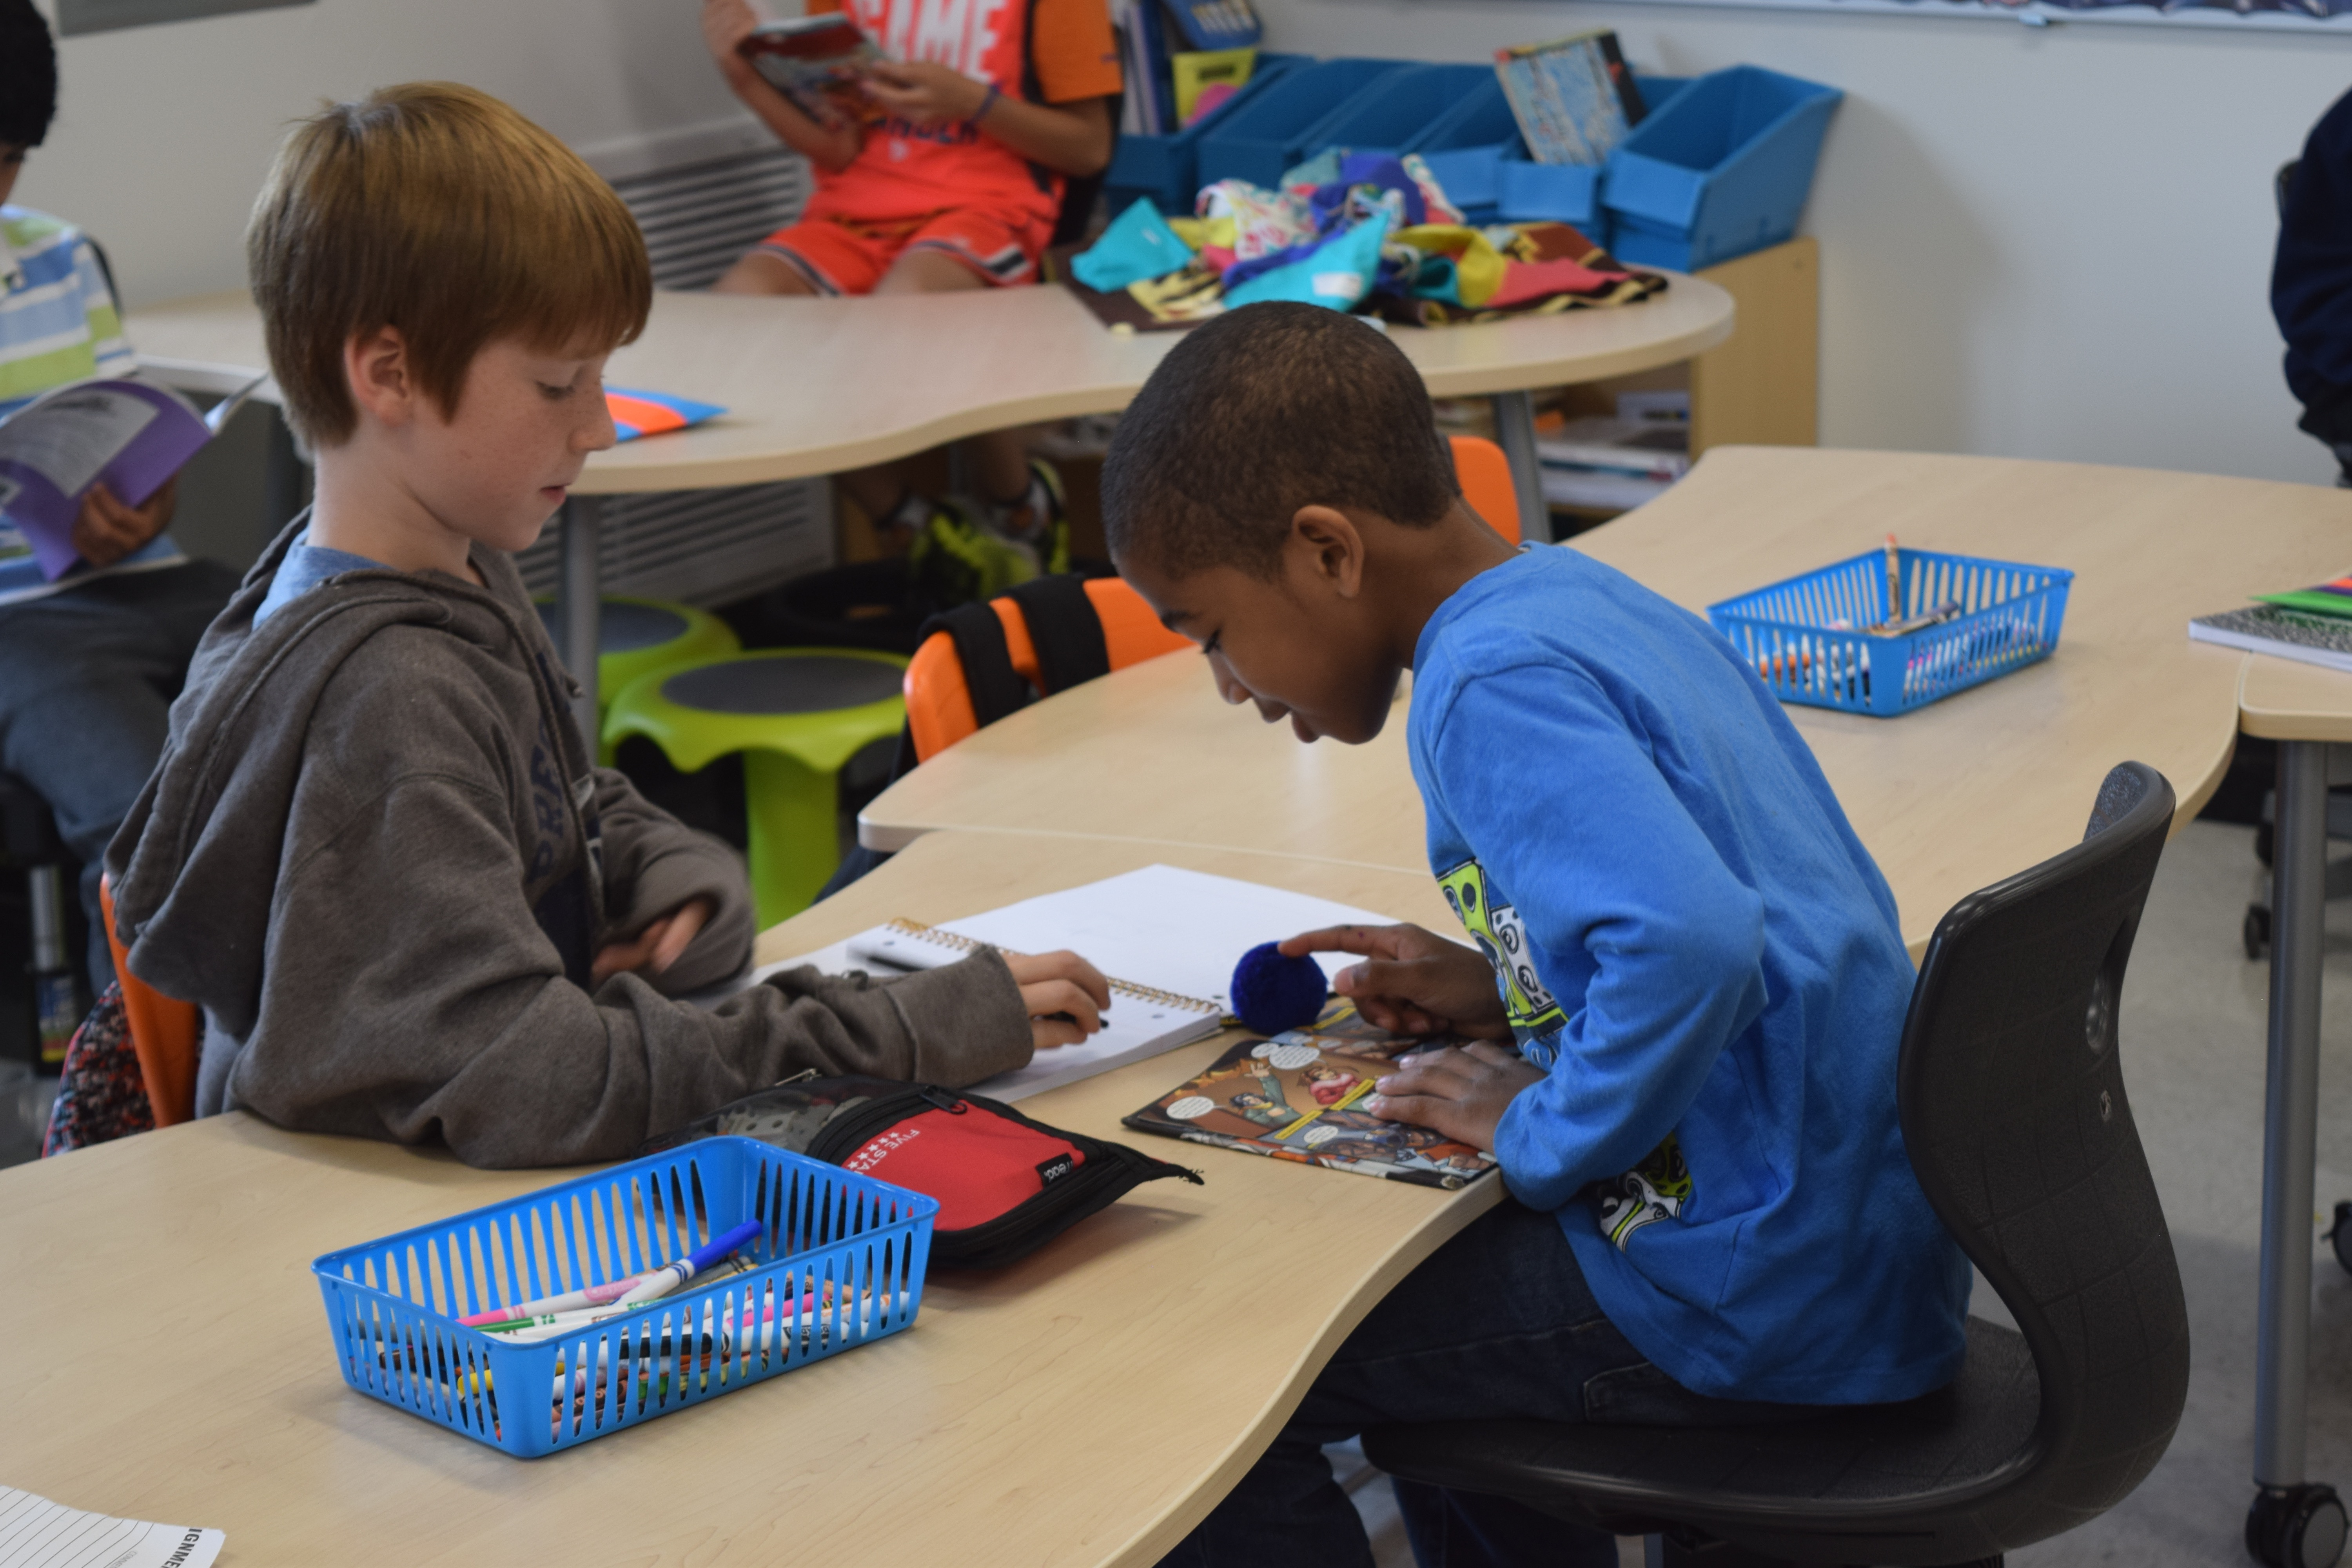 Two 3rd grade students reading across from each other at a desk